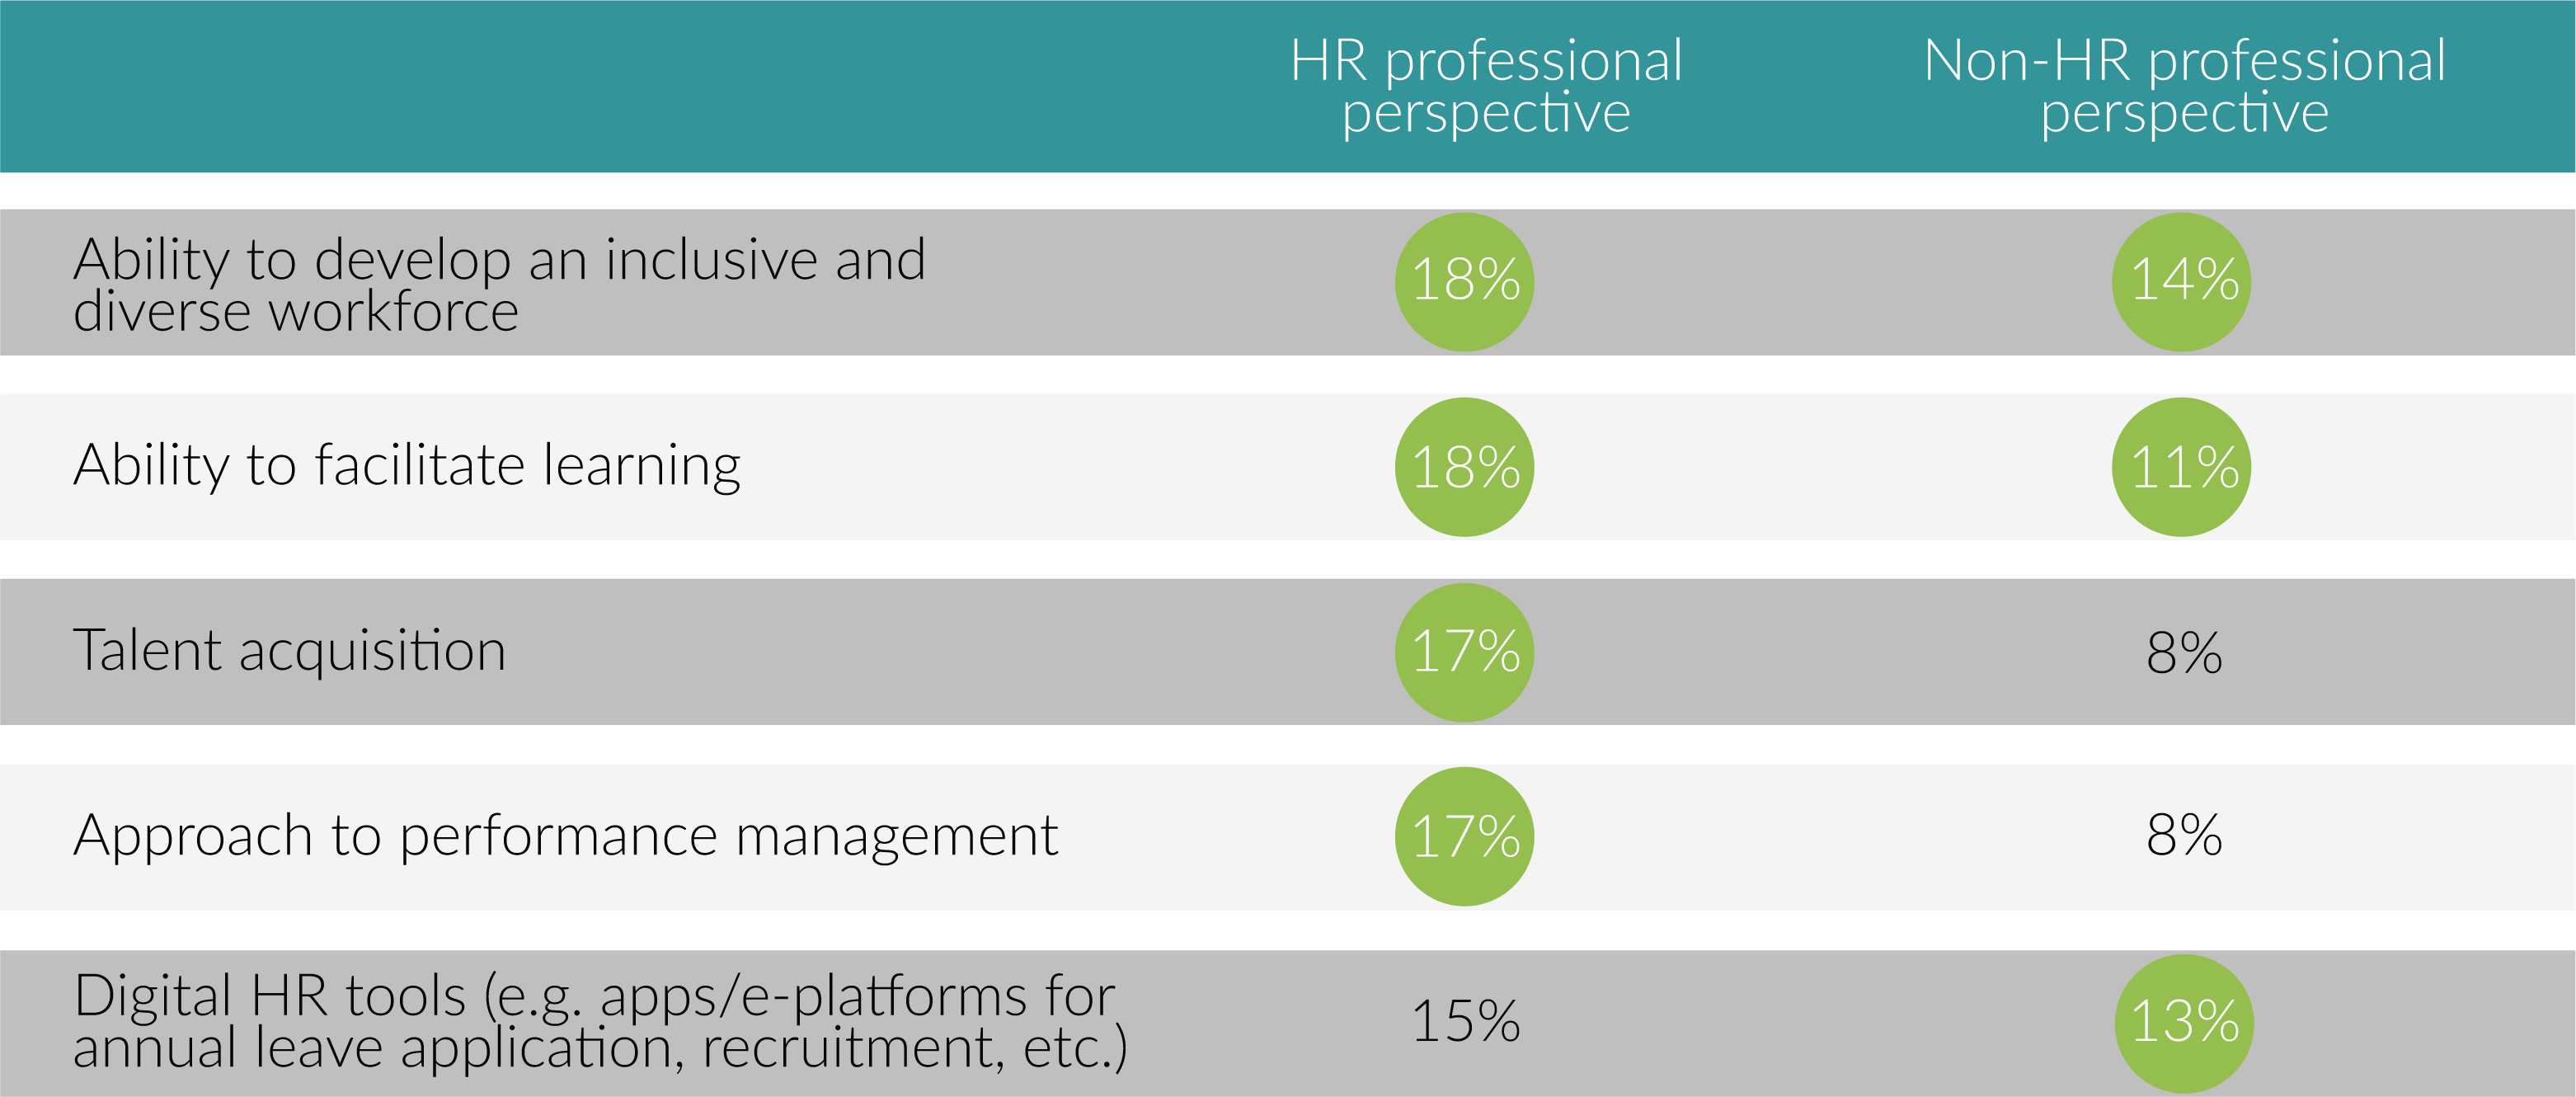 Top three areas in which the HR function's capability is considered to be excellent